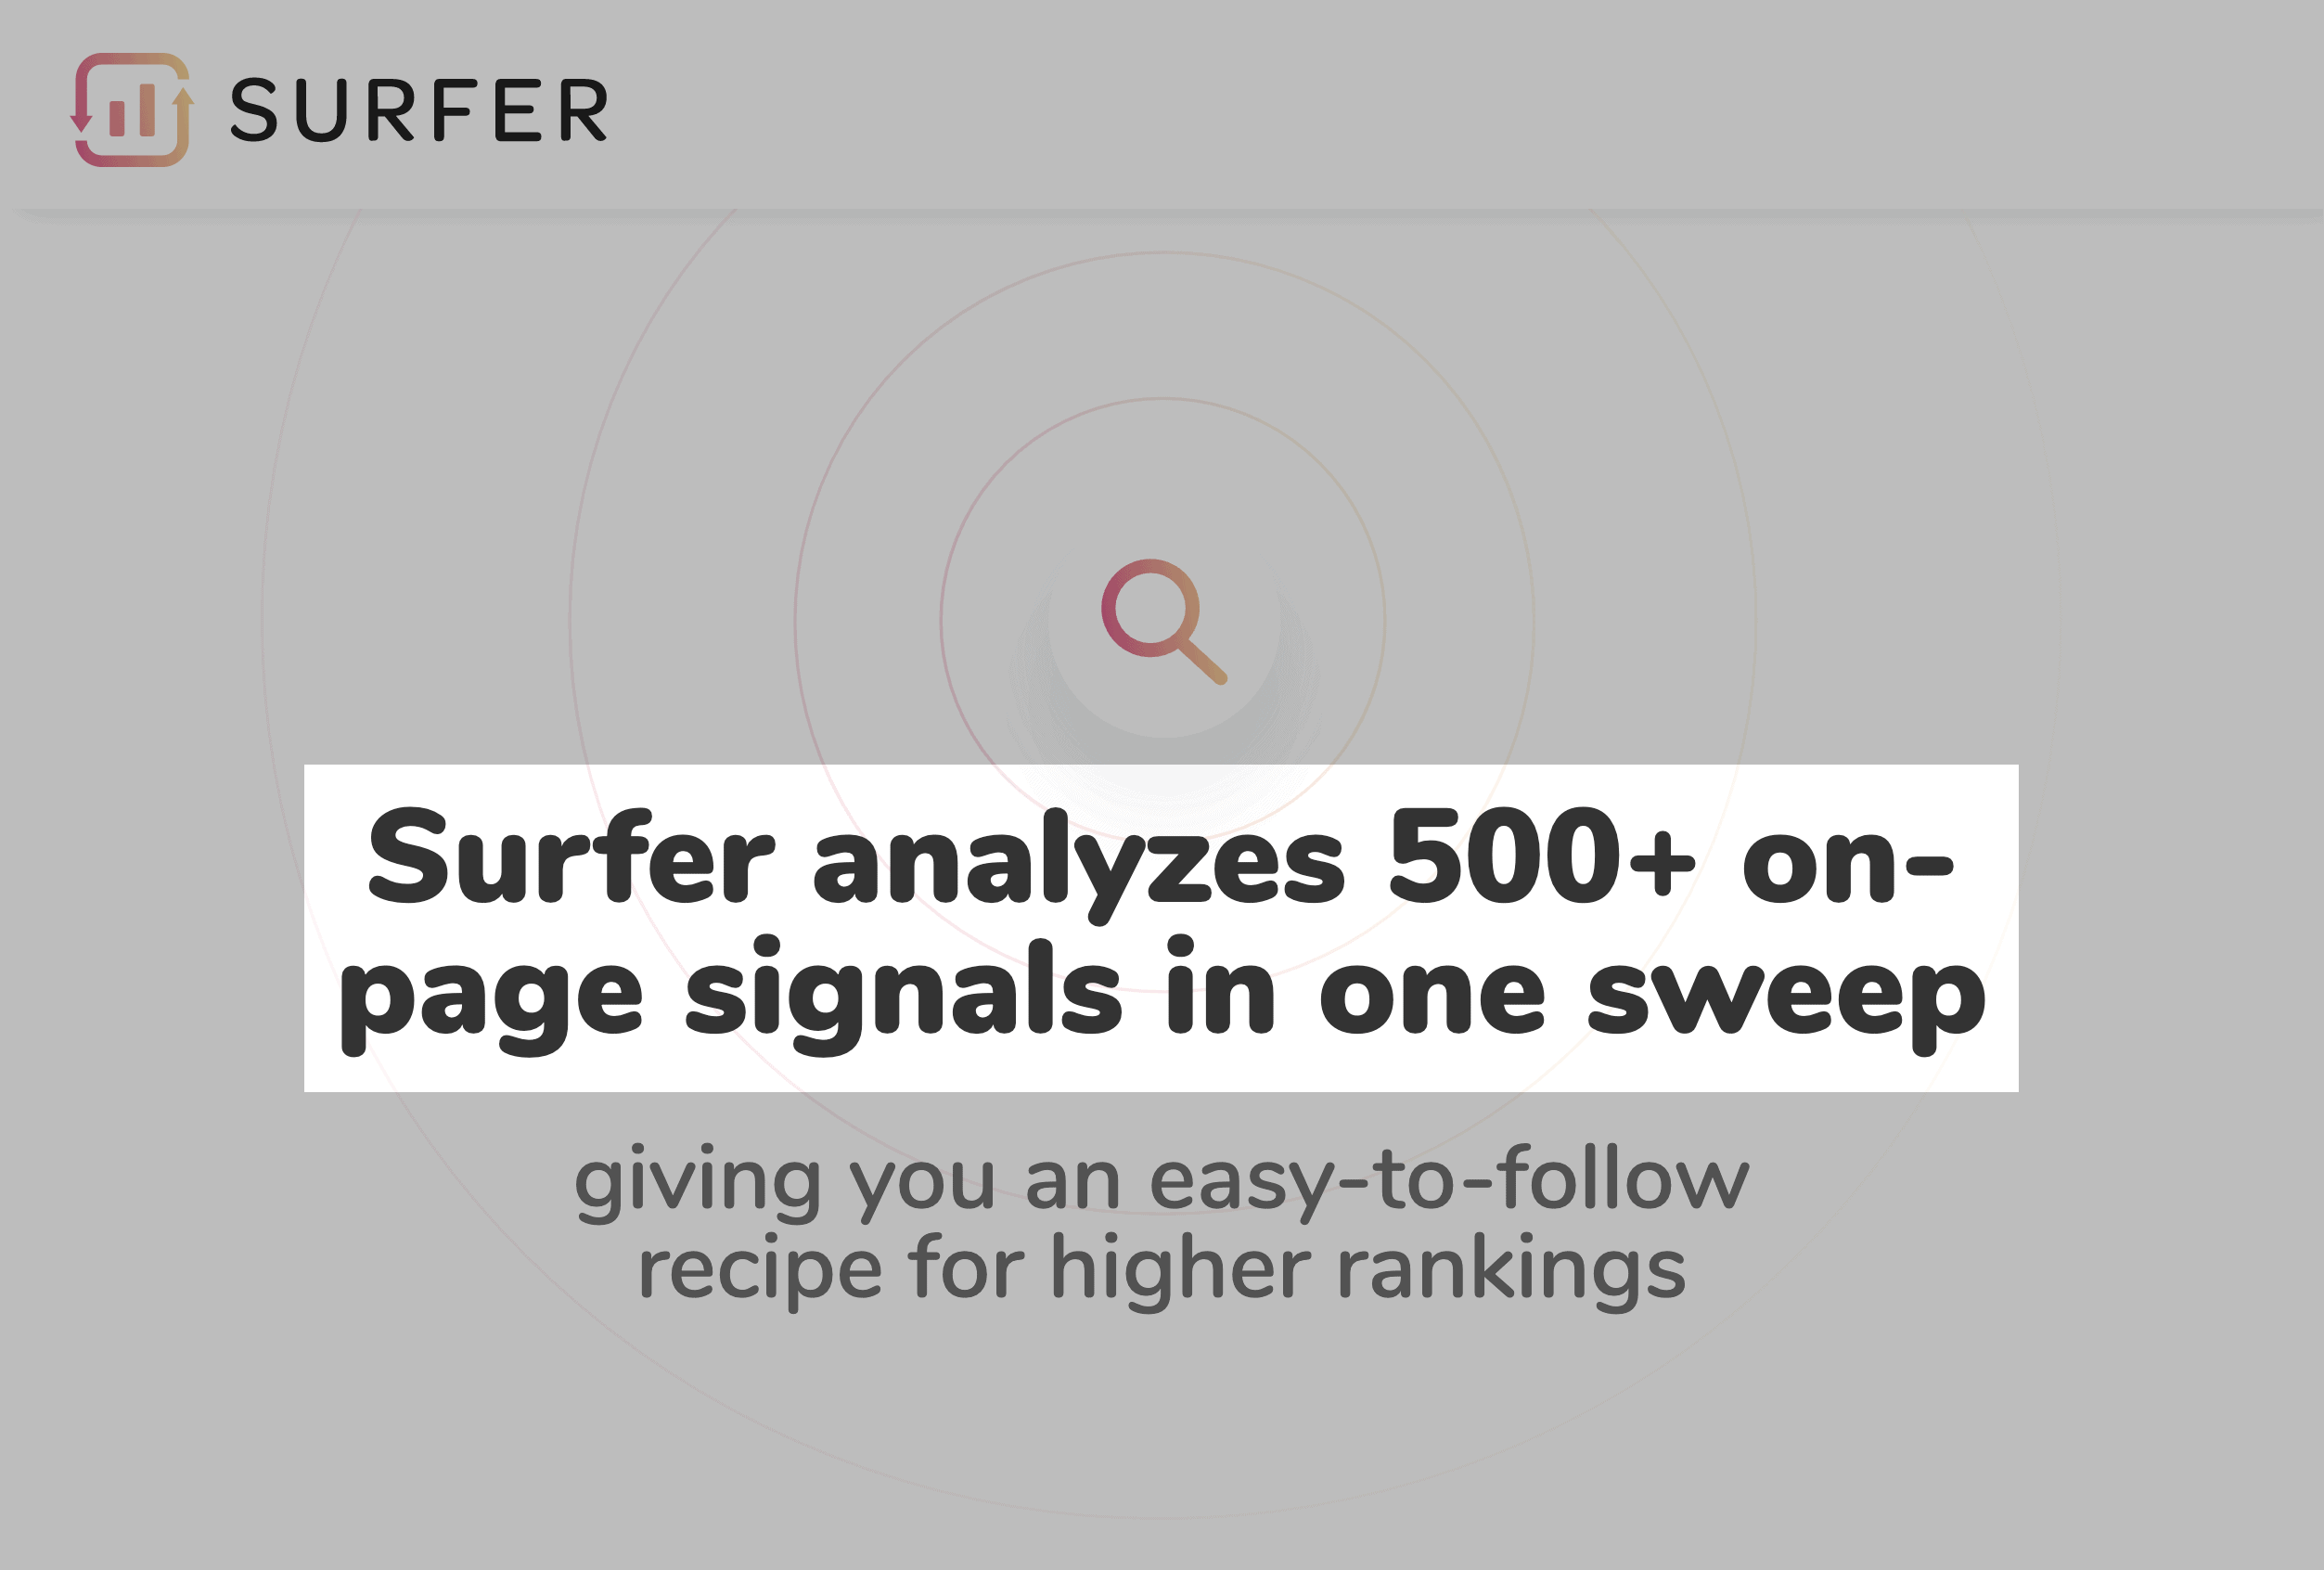 Surferseo – Analyzes On-Page Signals